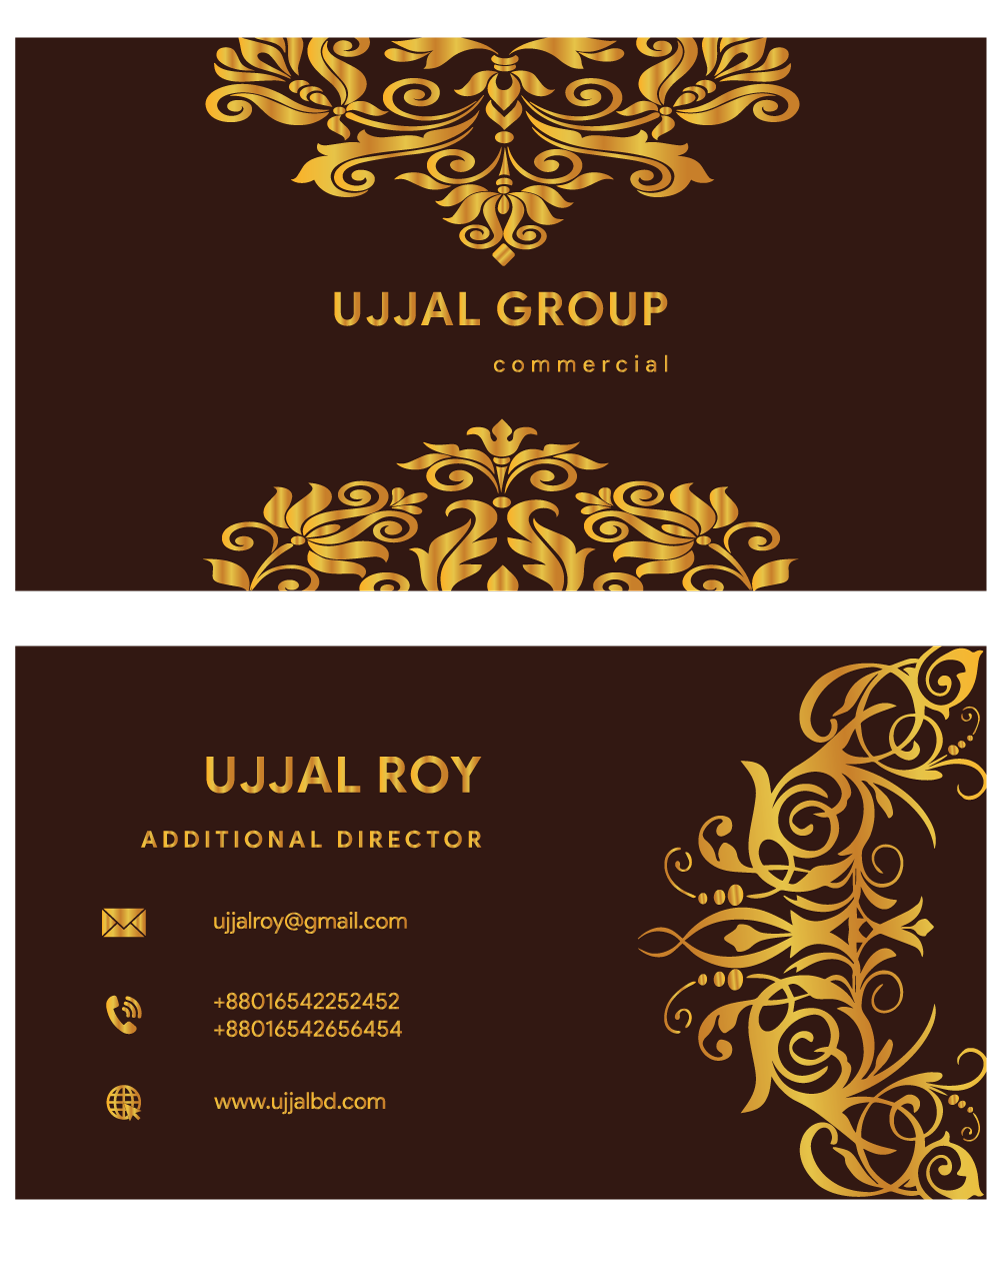 I will create a business card design in 24 hours